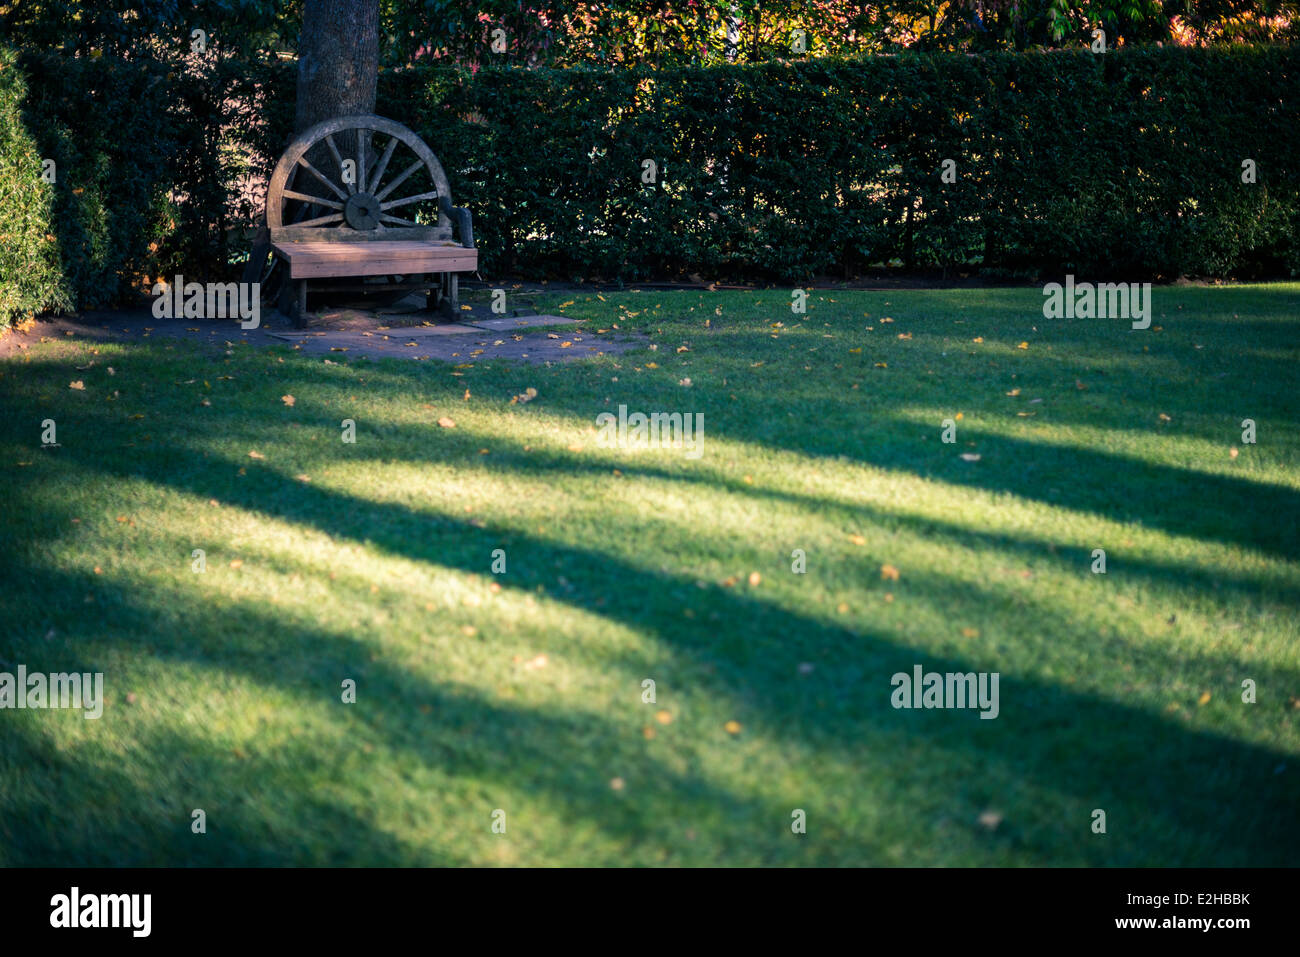 Bench in park of the Dandenong Ranges, with large shadows, at golden hour. - Stock Image